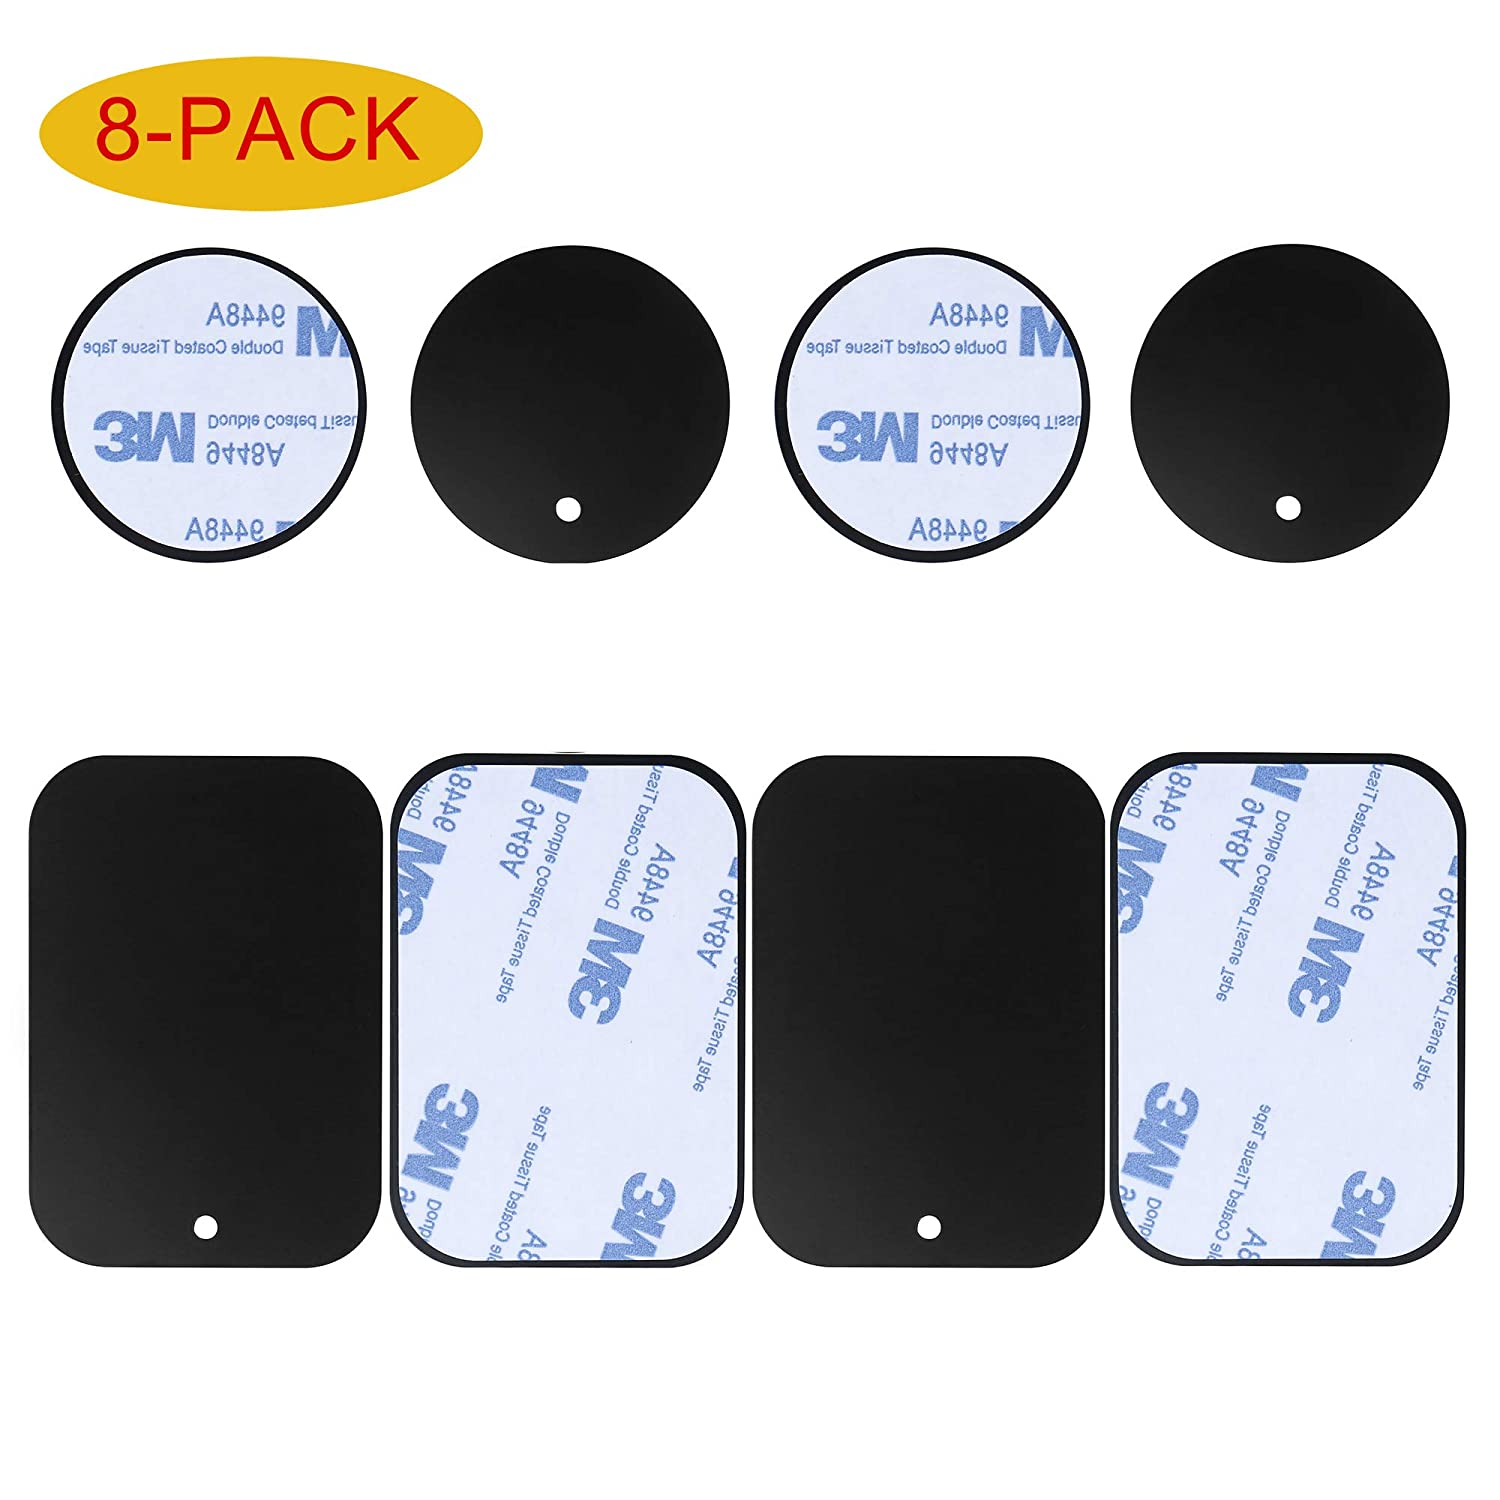 8-Pack Replacement Mount Metal Plates D.Sking Car Phone Holder Iron Plates for Car Mount Car Kits (8-Pack Black)